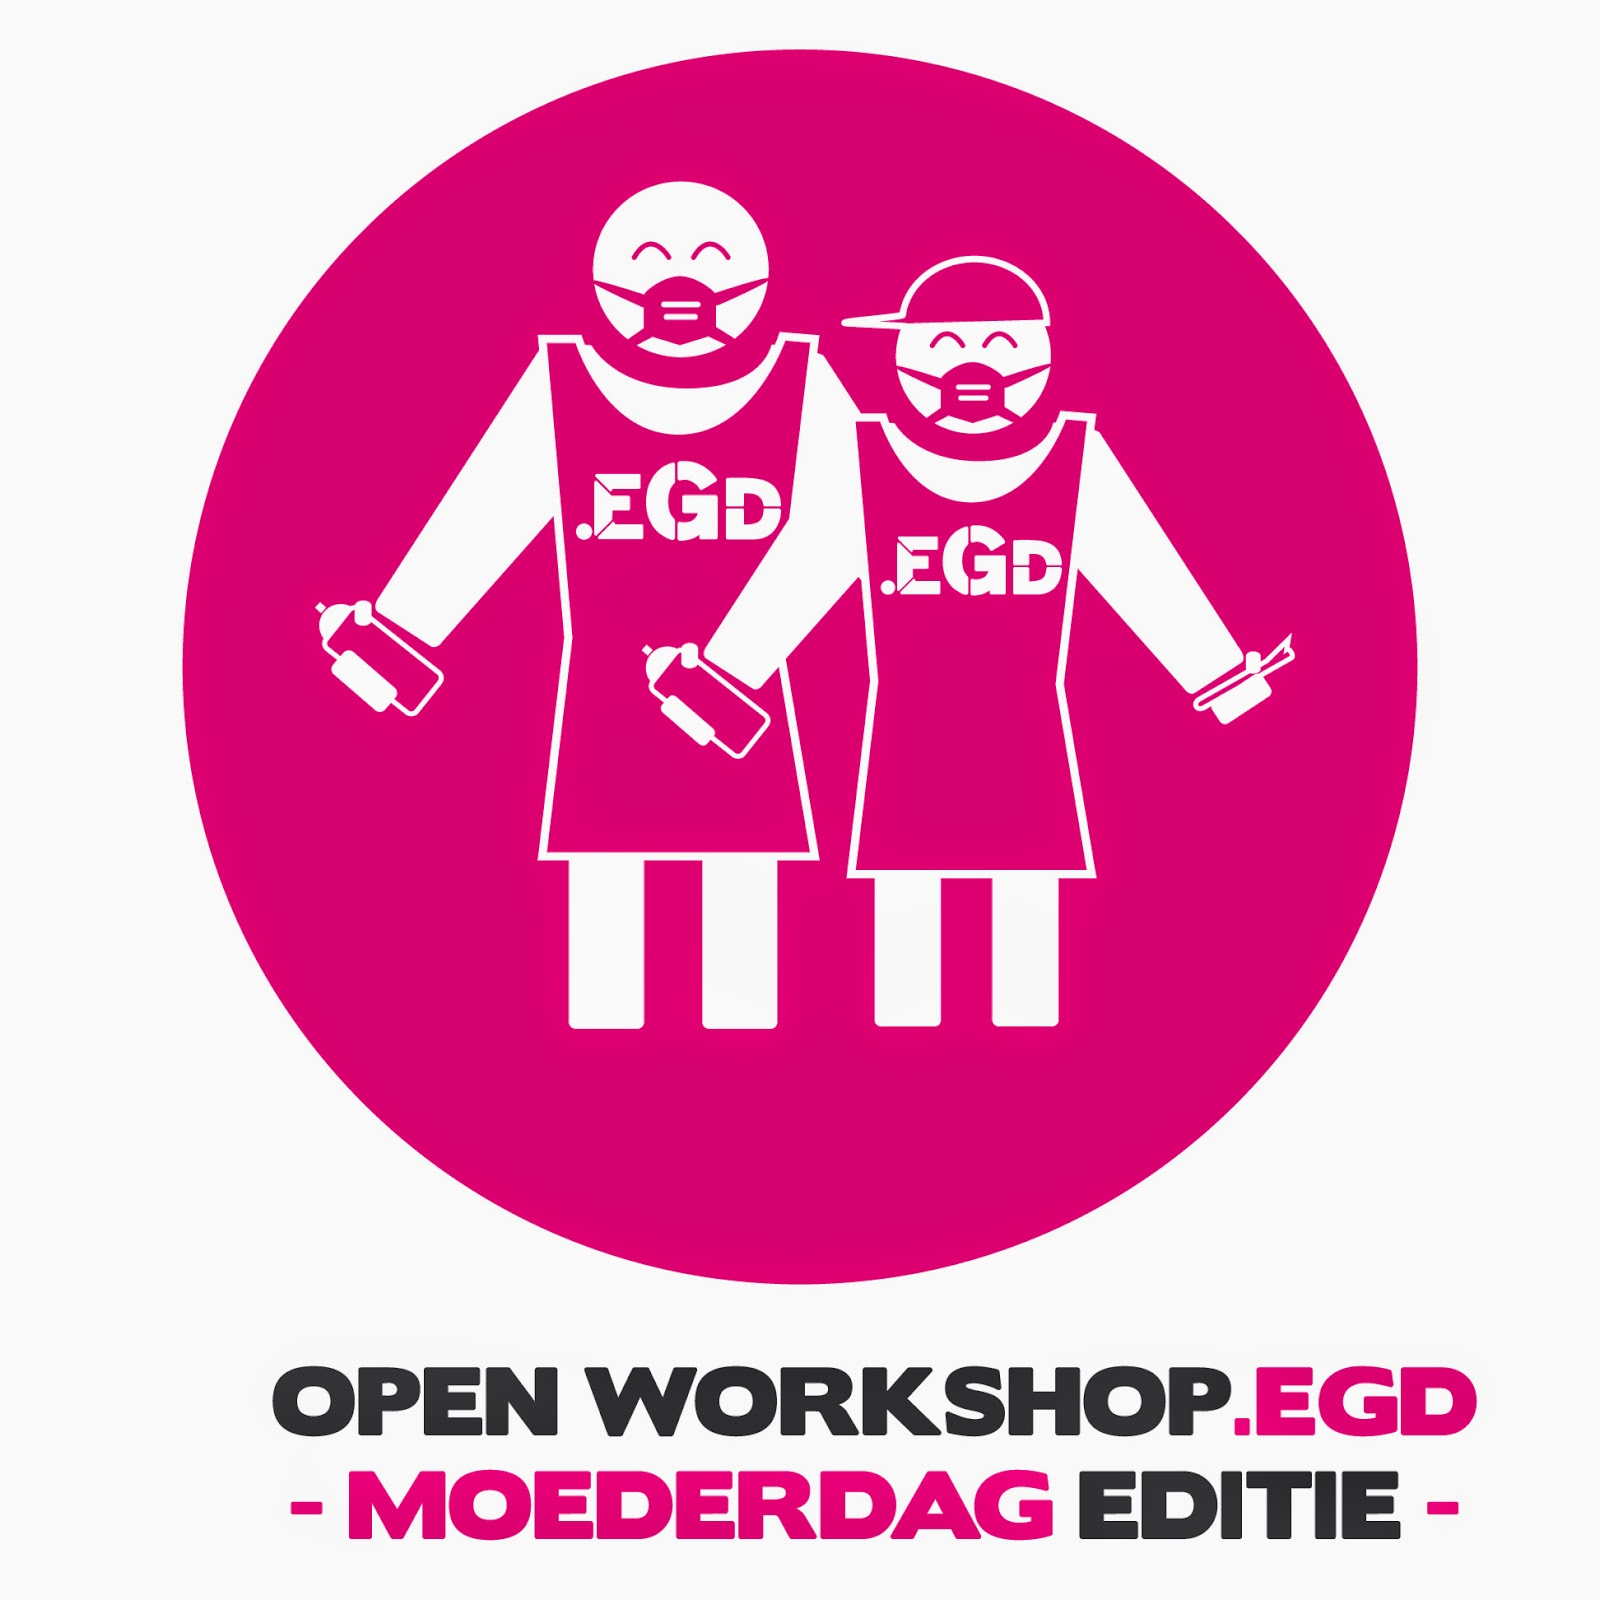 10 Mei: Moederdag: OPEN workshop.EGD